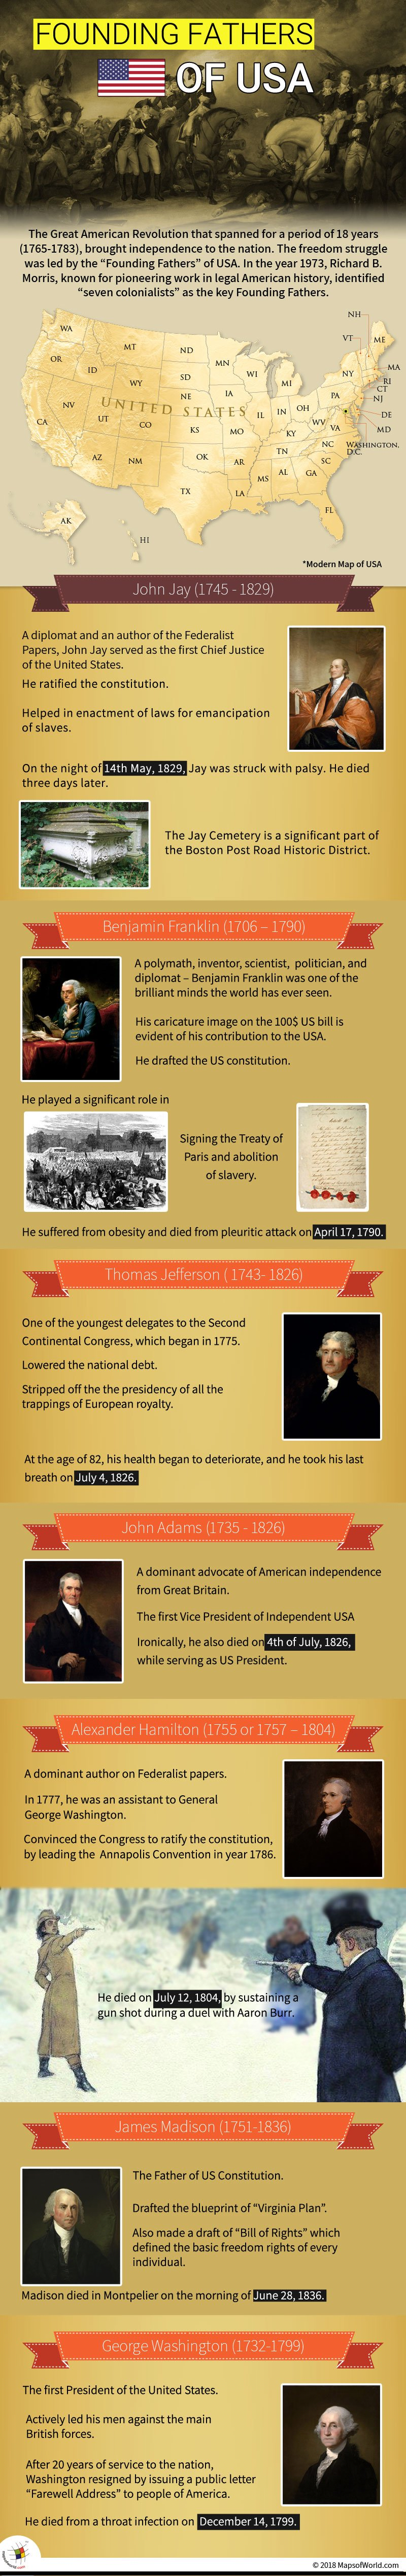 Infographic elaborating Founding Fathers of USA